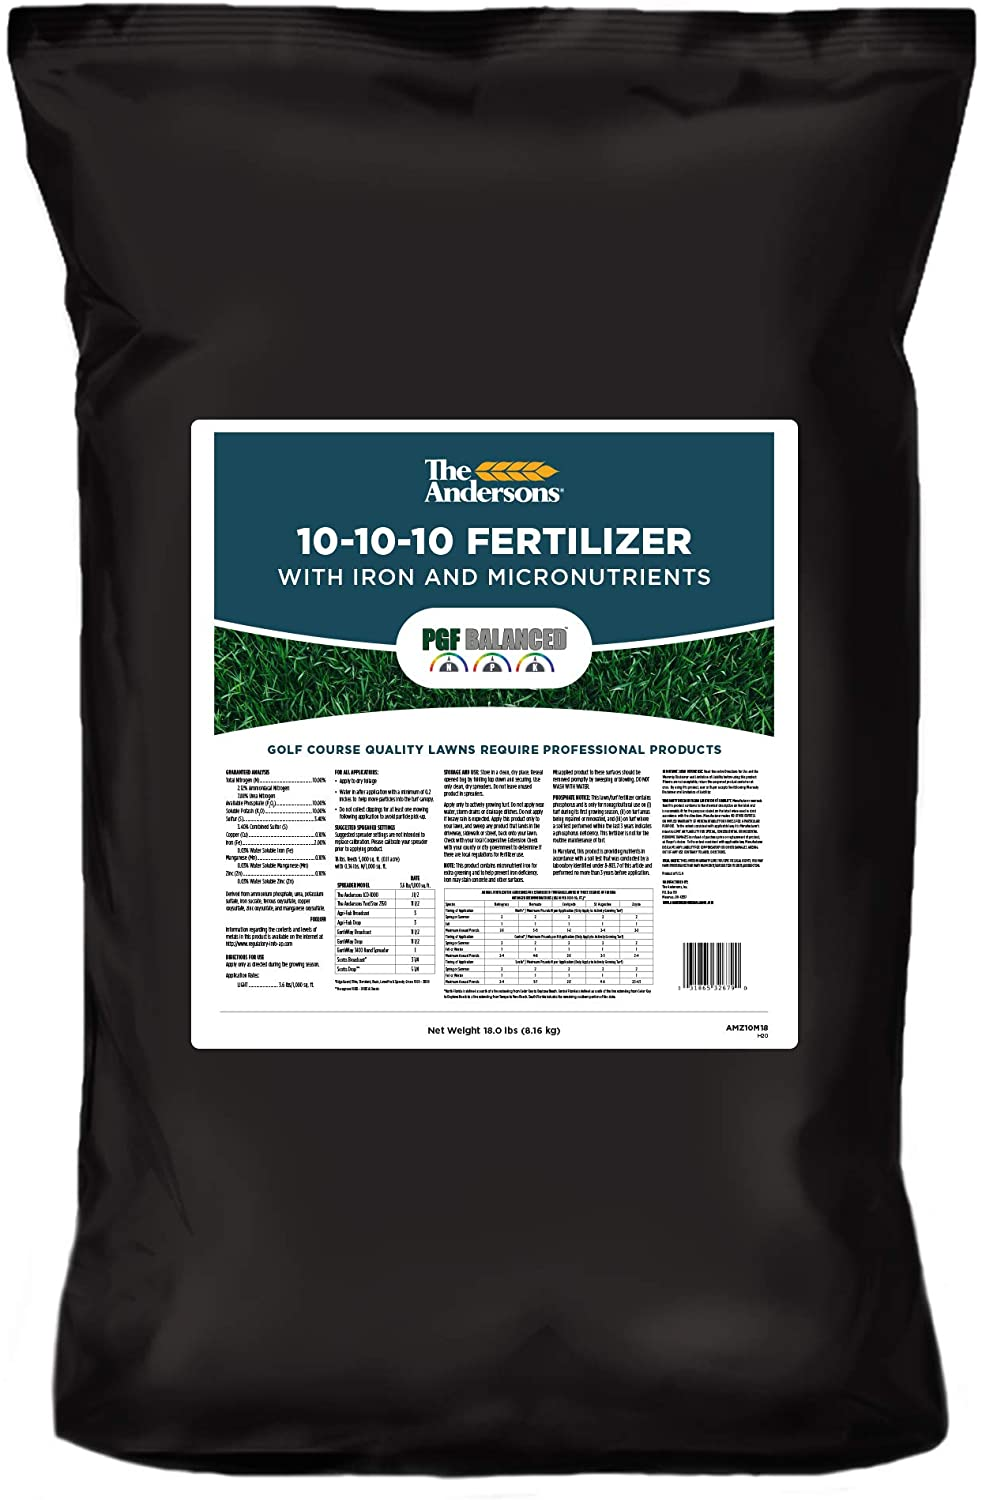 The Andersons PGF Balanced 10-10-10 Fertilizer with Micronutrients and 2% Iron (5,000 sq ft)